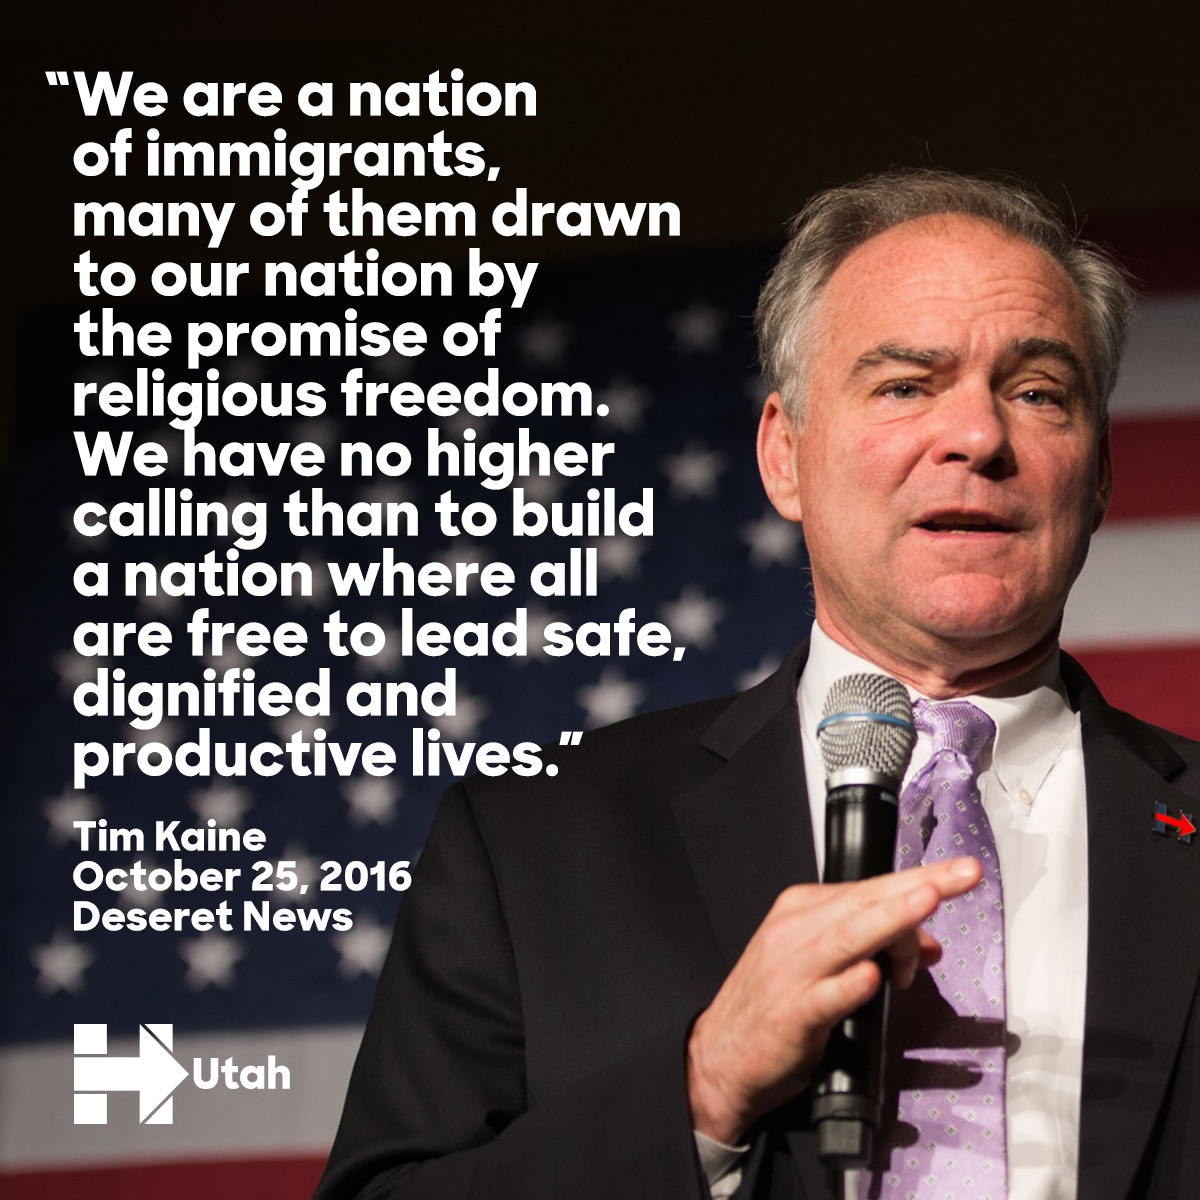 Kaine on immigration